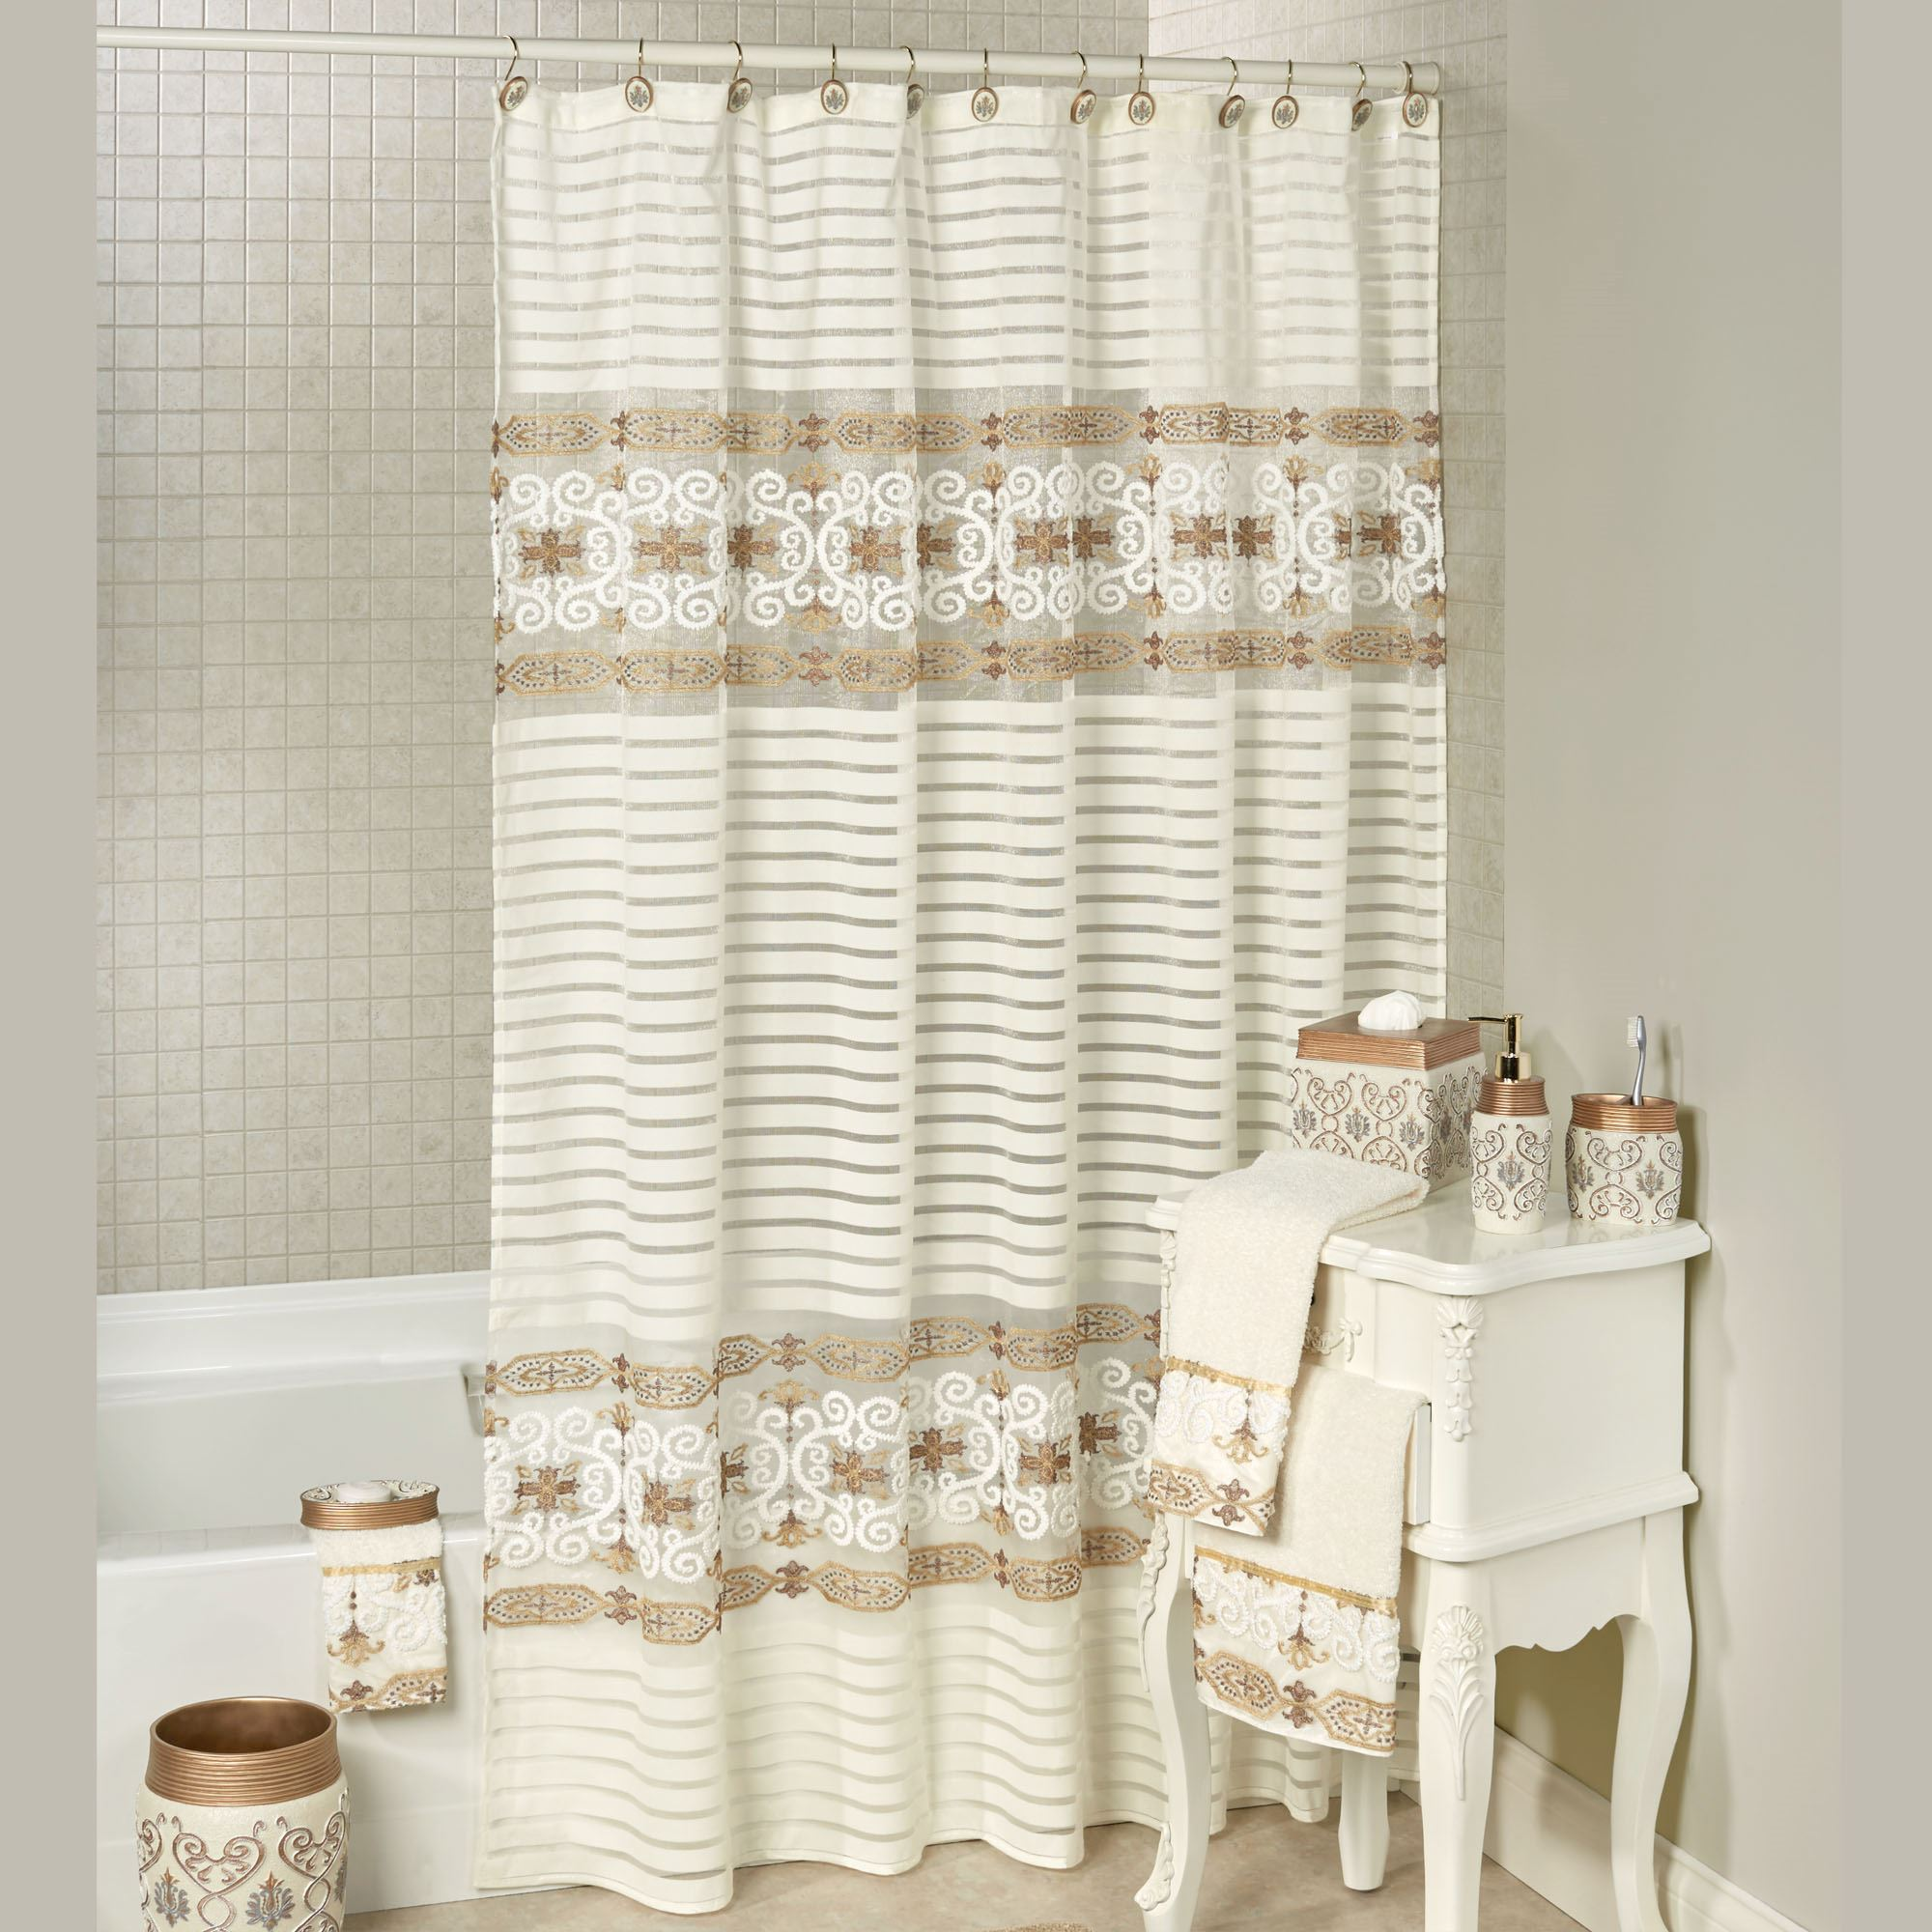 savoy embroidered semi sheer shower curtain